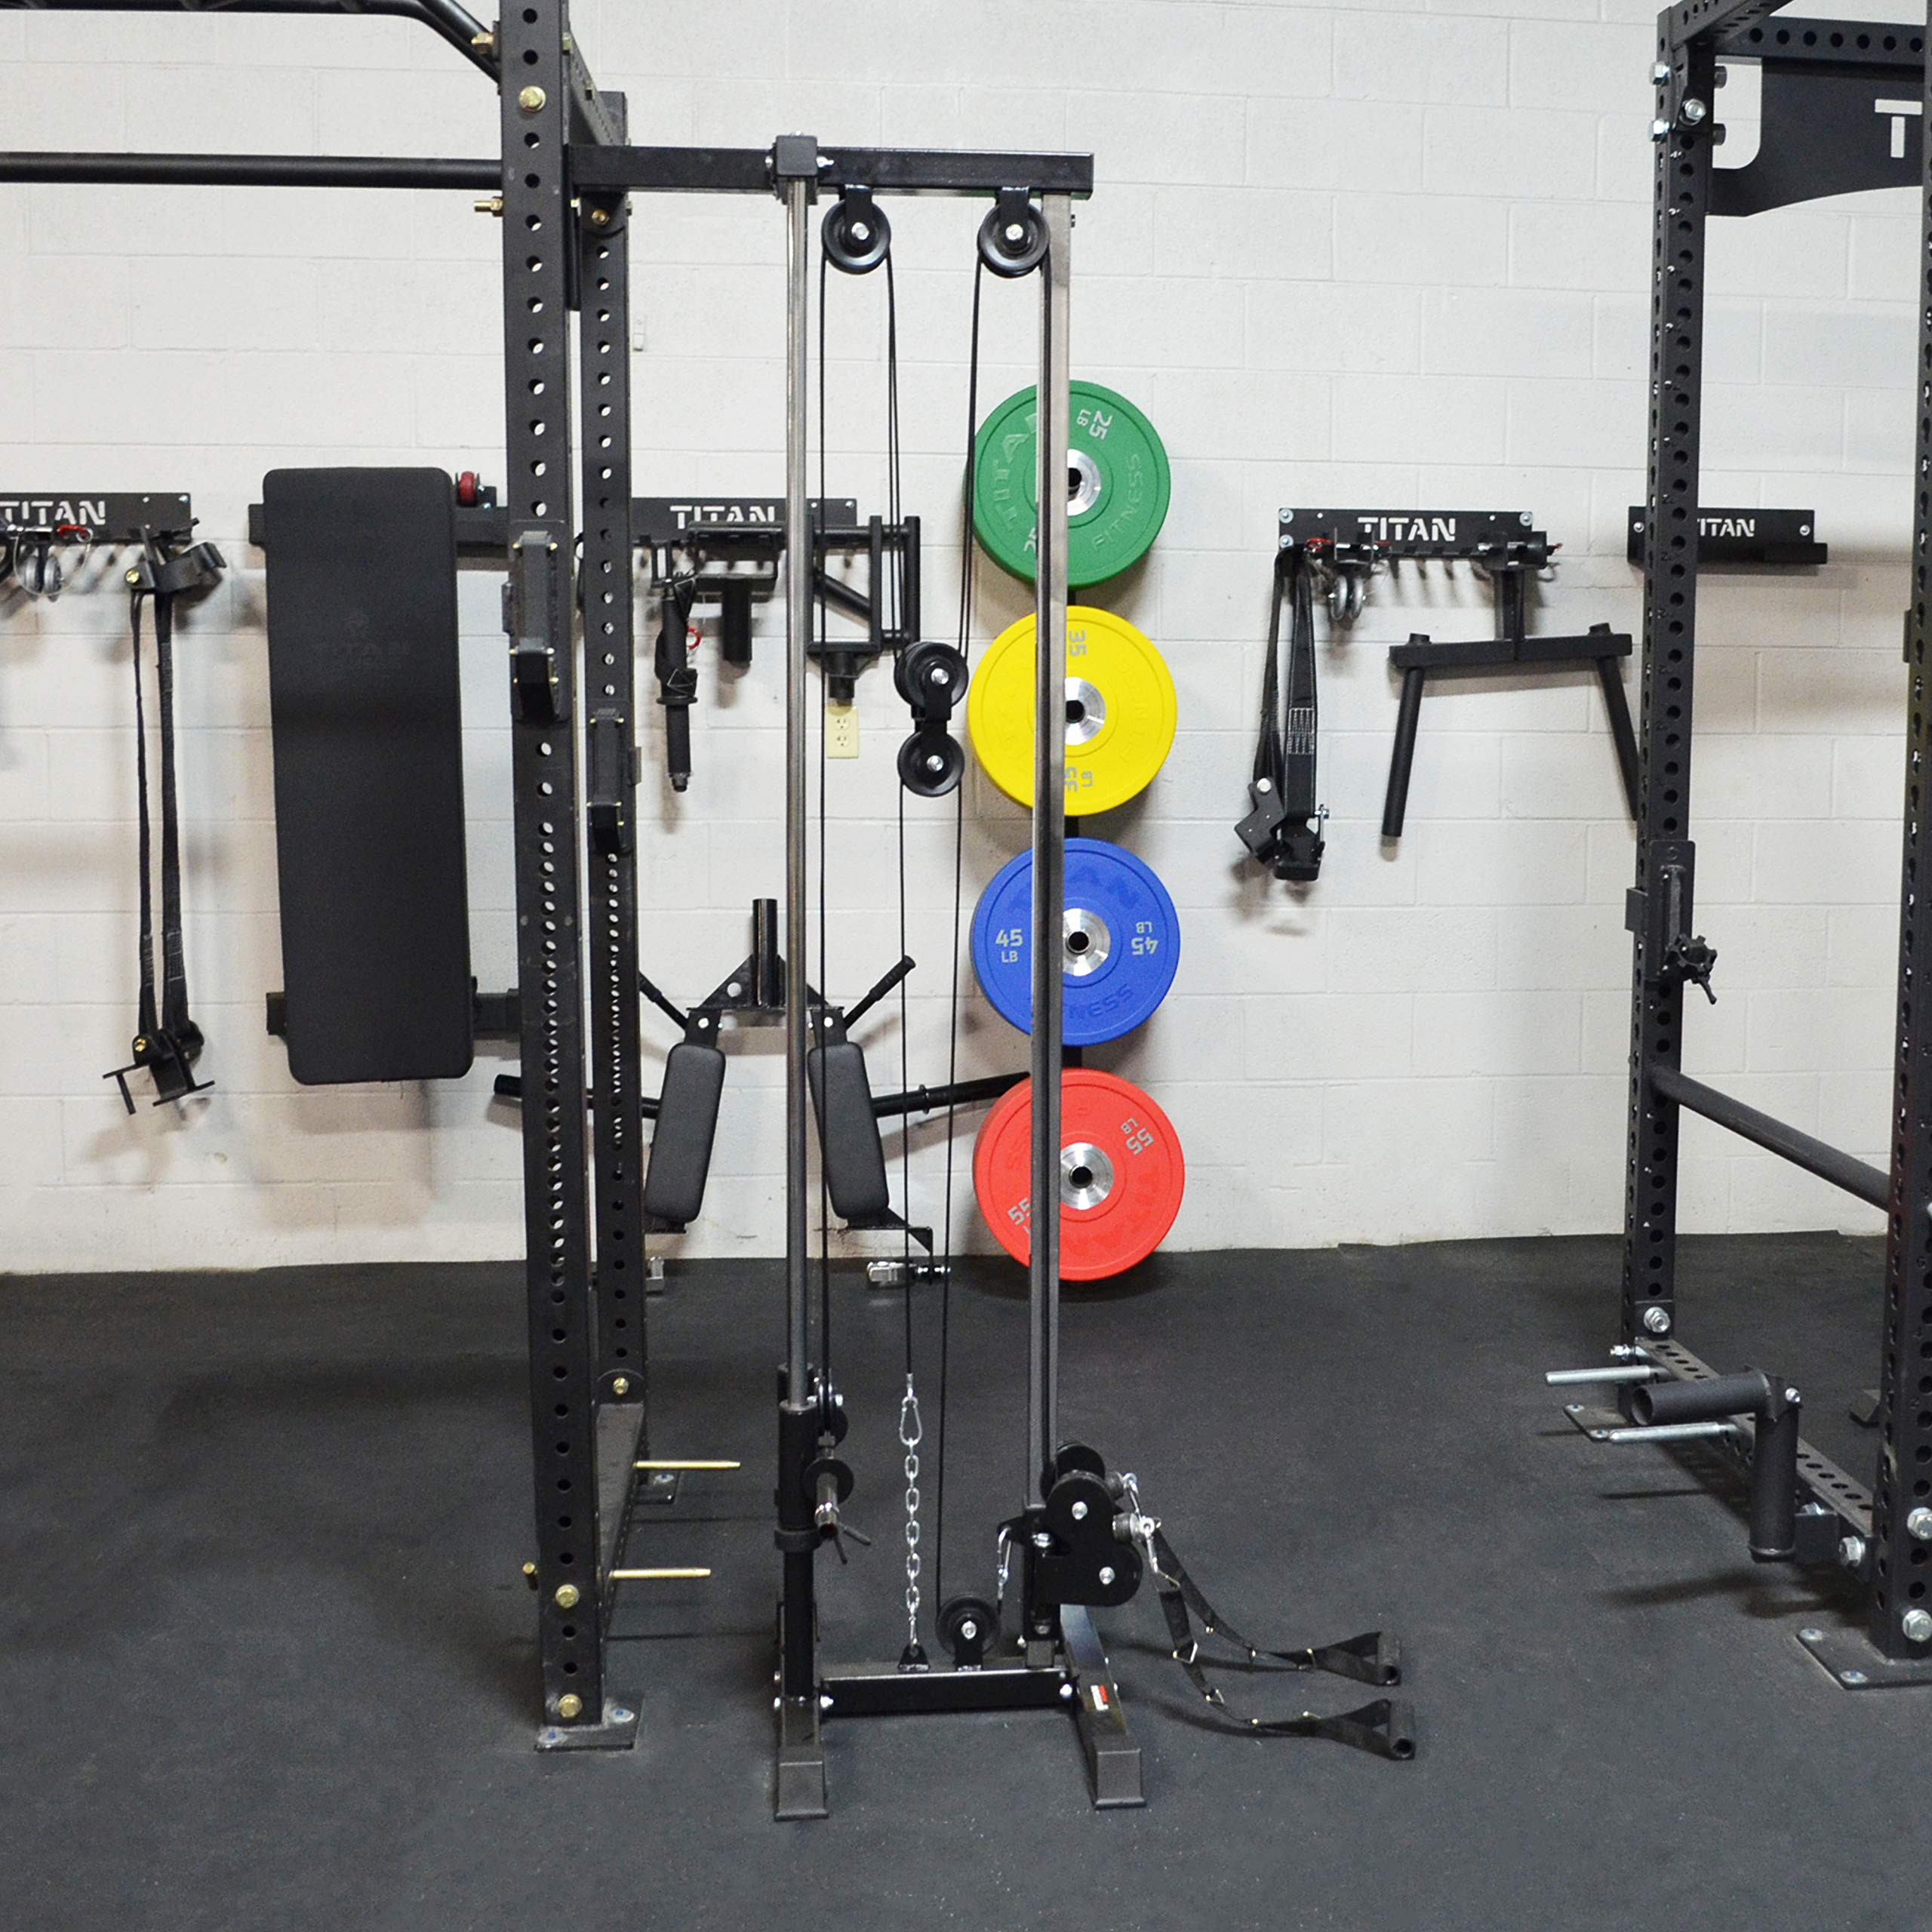 Titan Fitness Wall Mounted Pulley Tower | Tall | V2 by Titan Distributors Inc. (Image #3)